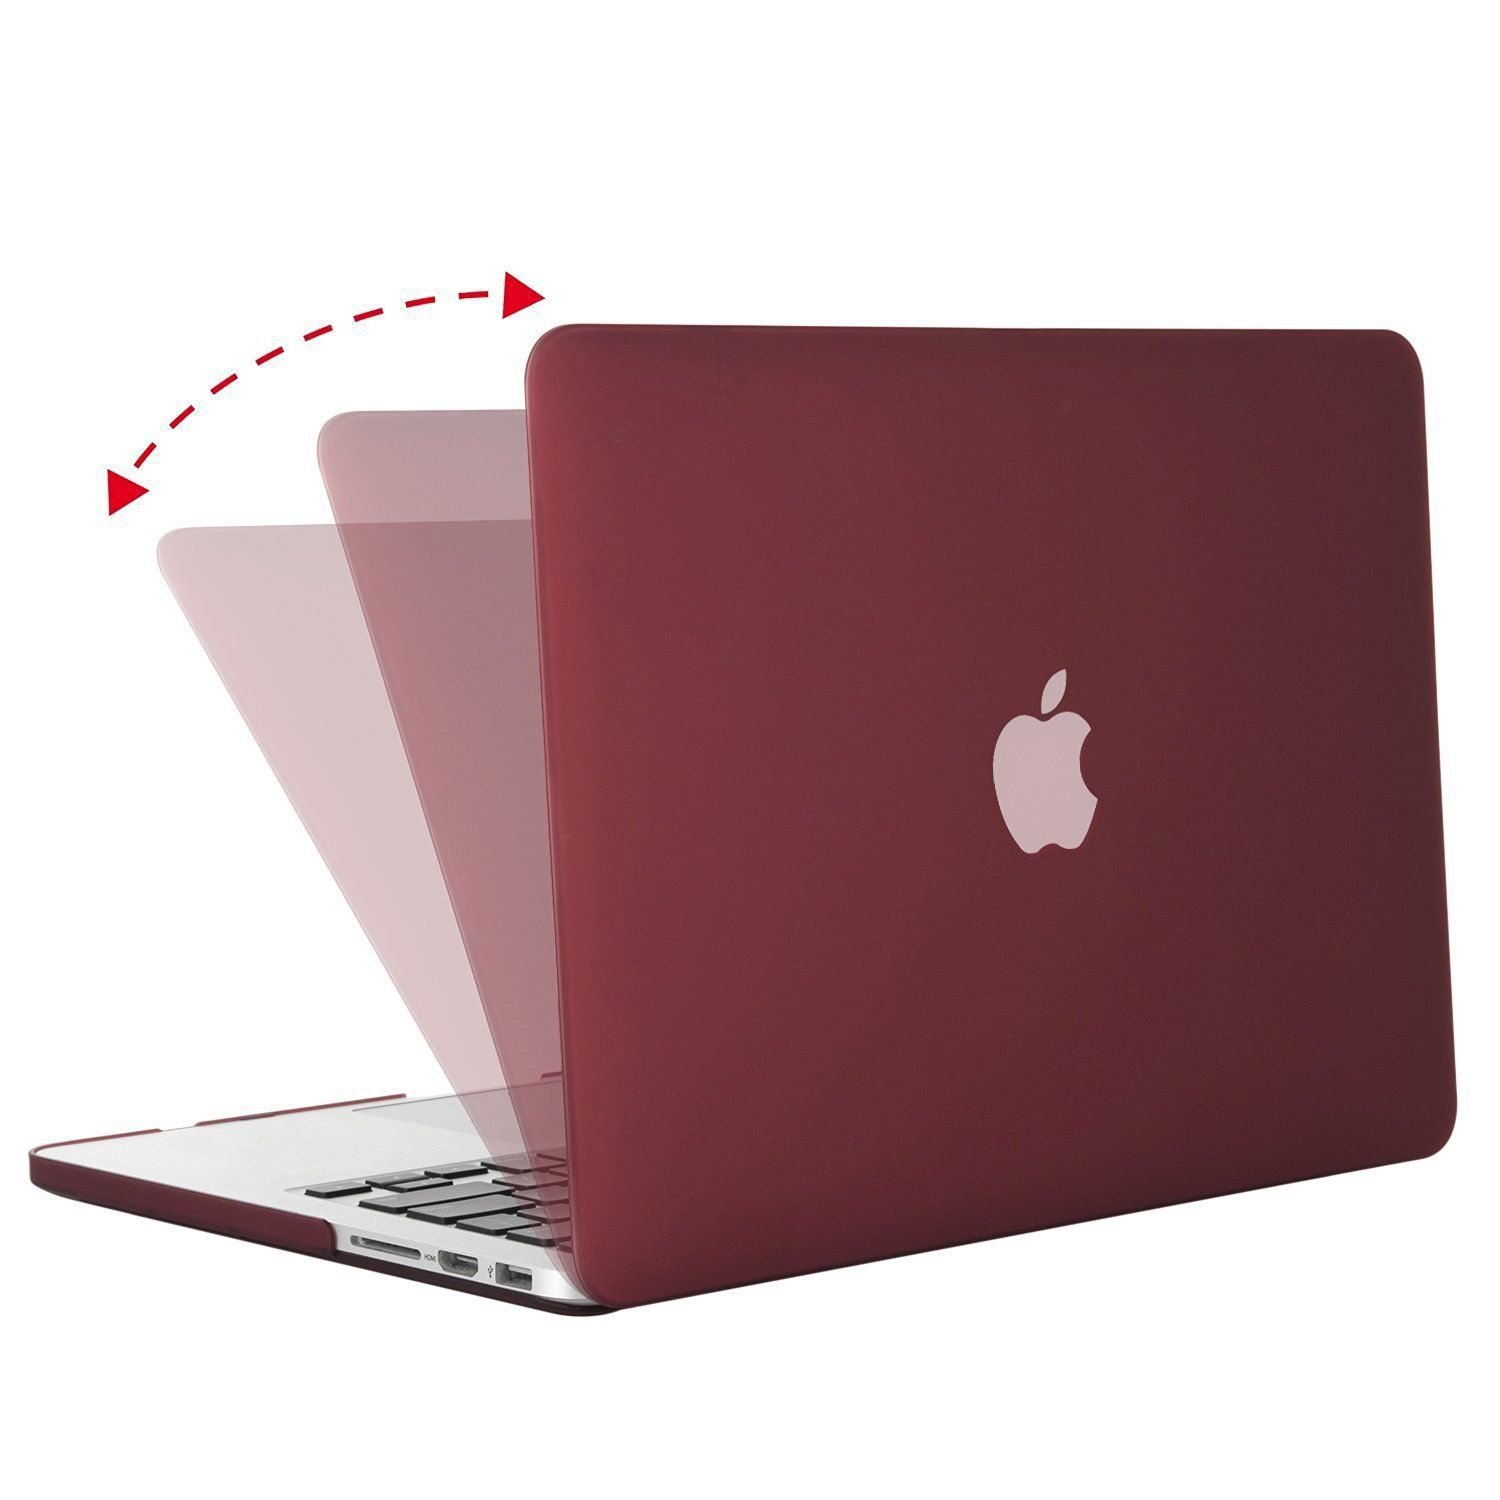 """13.3"""" MOSISO WINE RED Matte Case for MacBook Air Laptop 9 COLORS FAST FREE SHIPPING USA"""